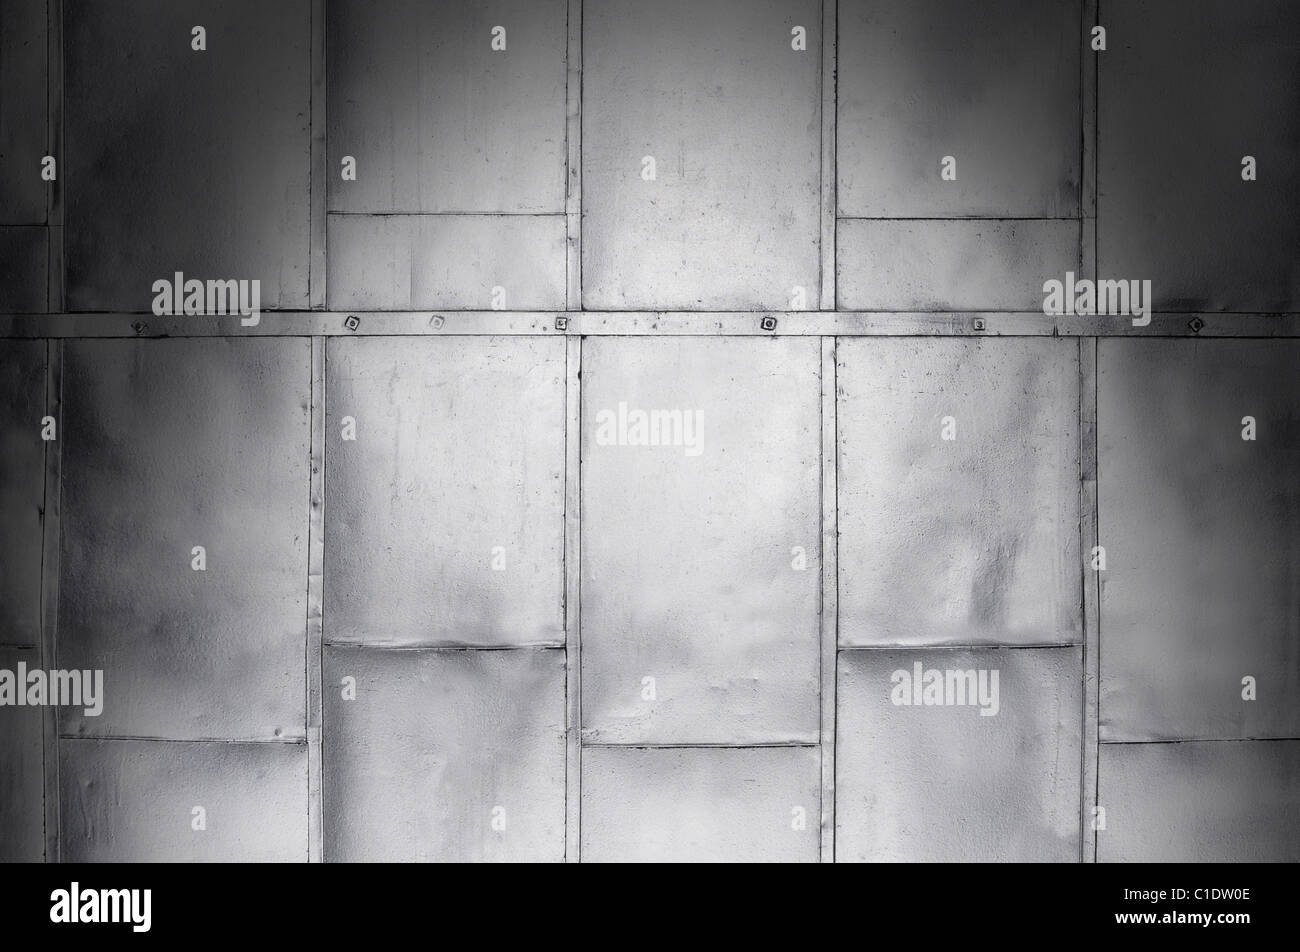 Metal panels on industrial door or wall dramatically lit from above - Stock Image